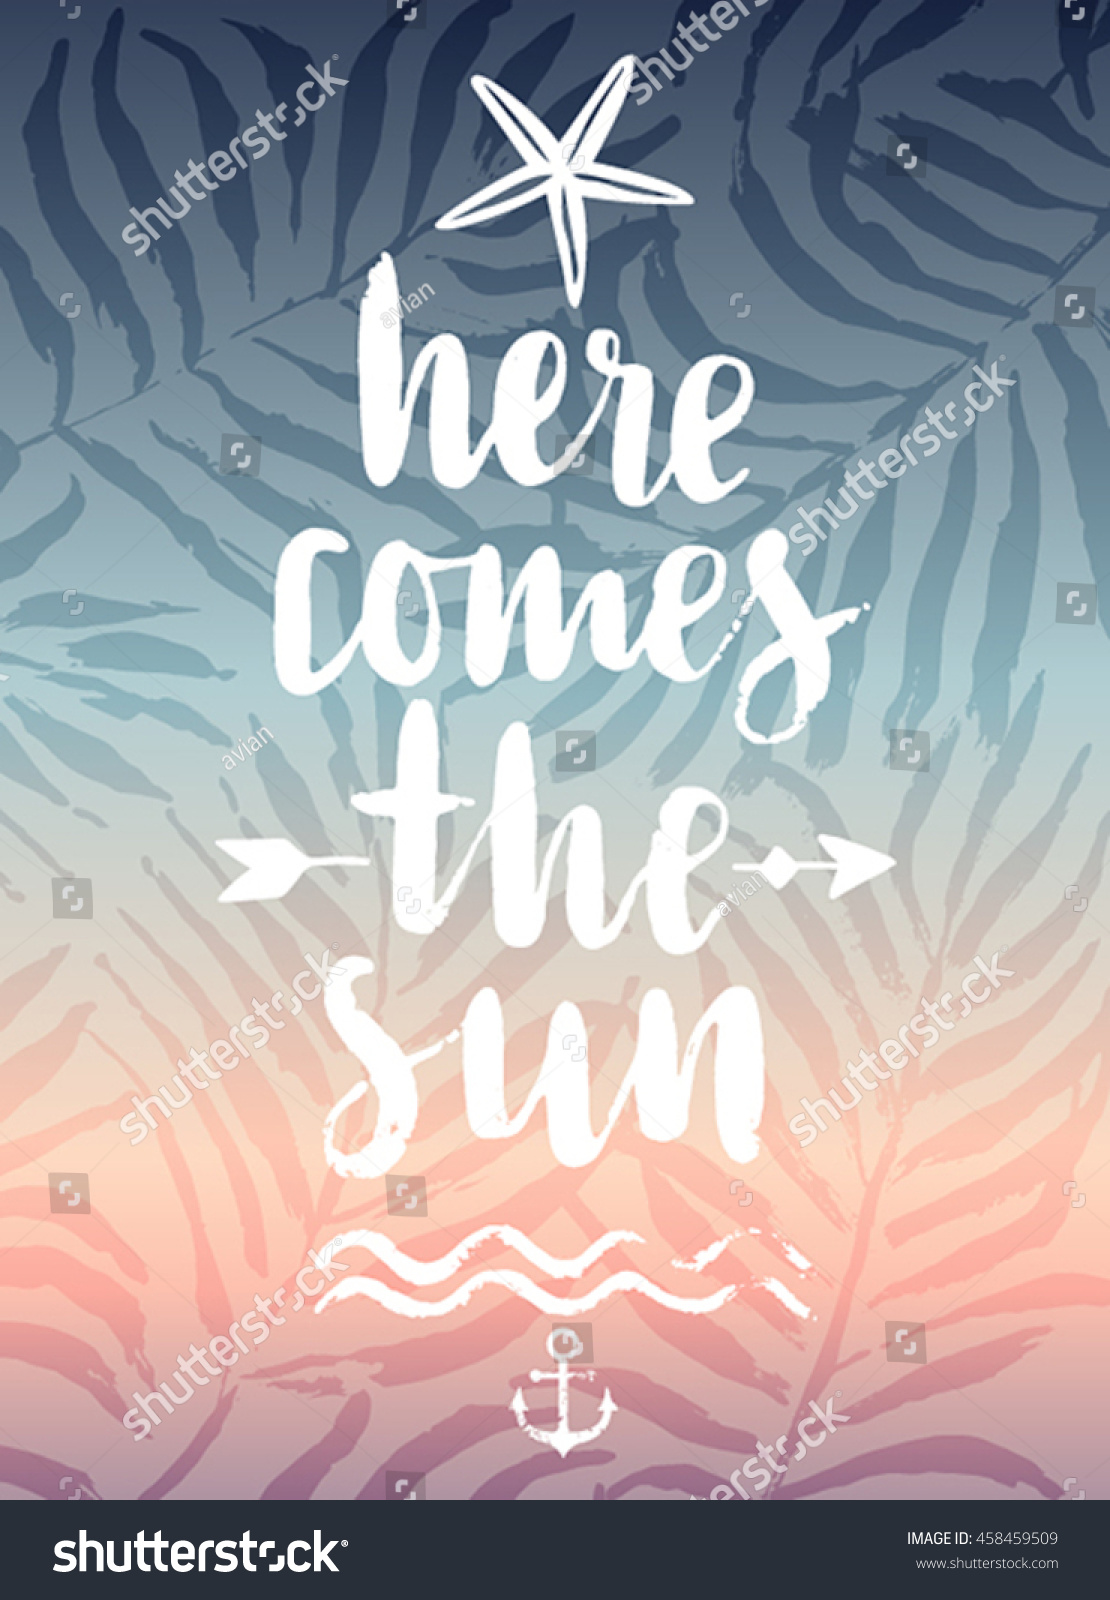 Here Comes the Sun hand drawn calligraphyc card Vector illustration